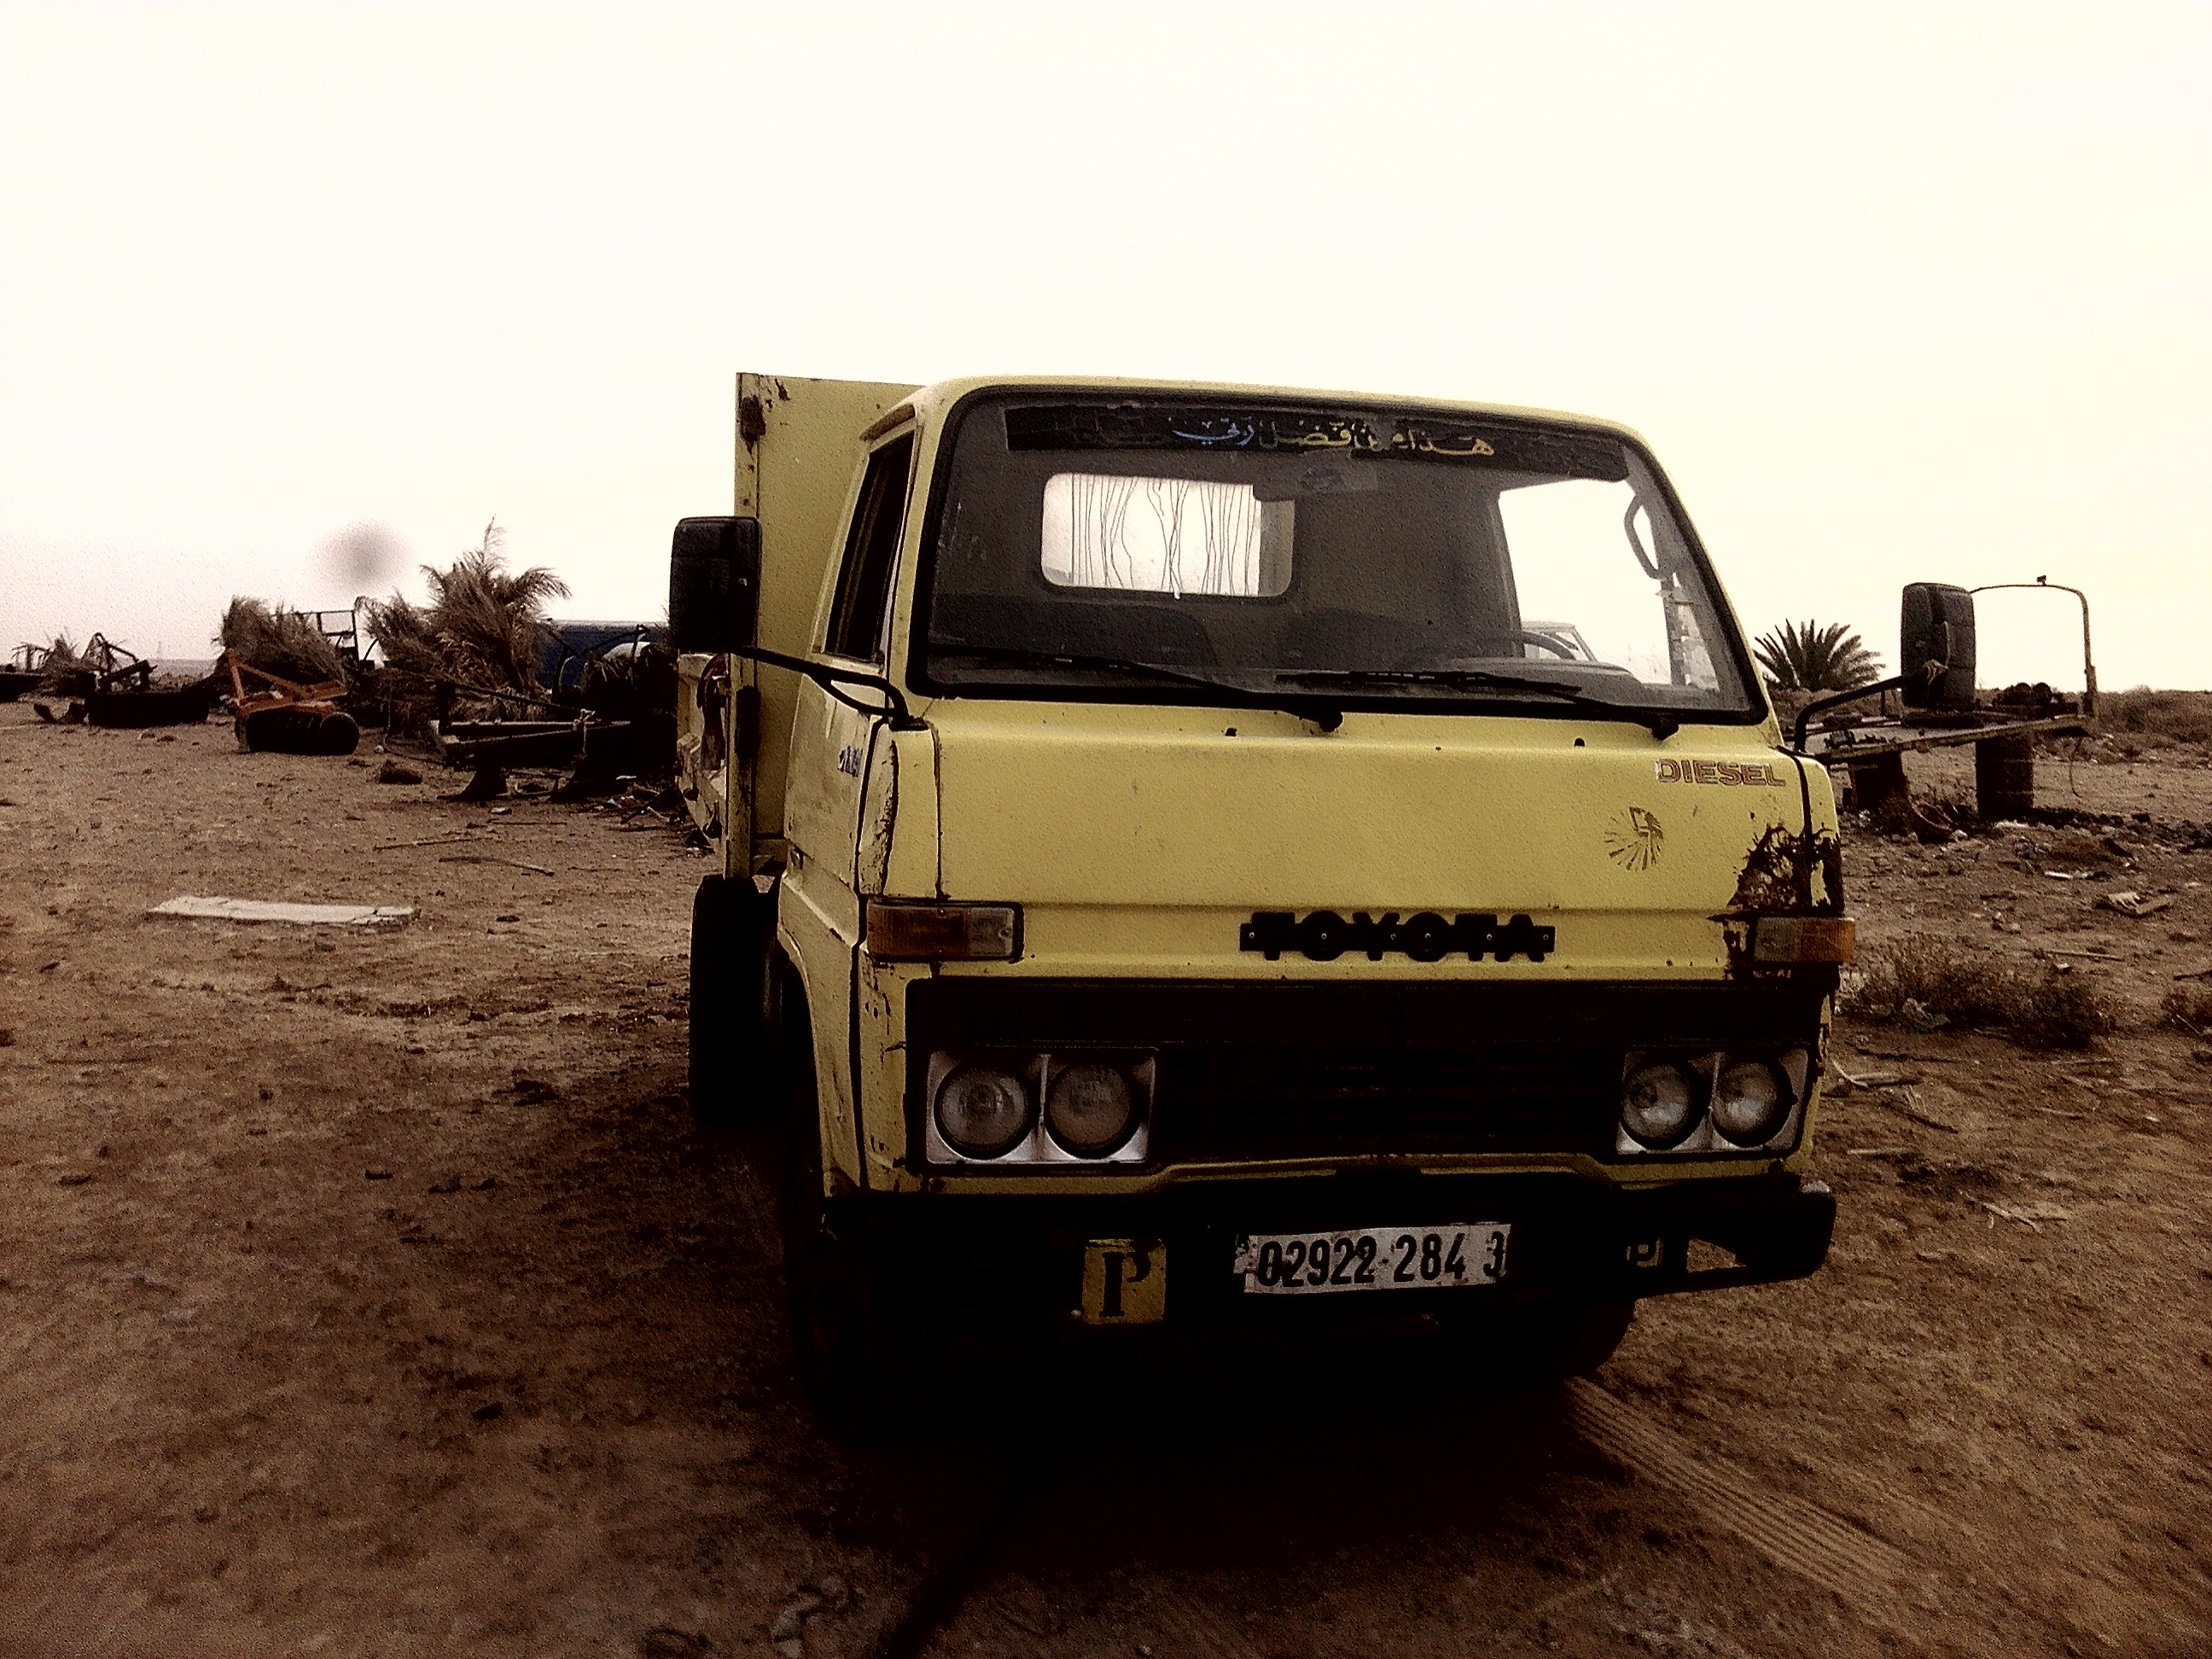 Toyota Dyna 1984 ouedkniss